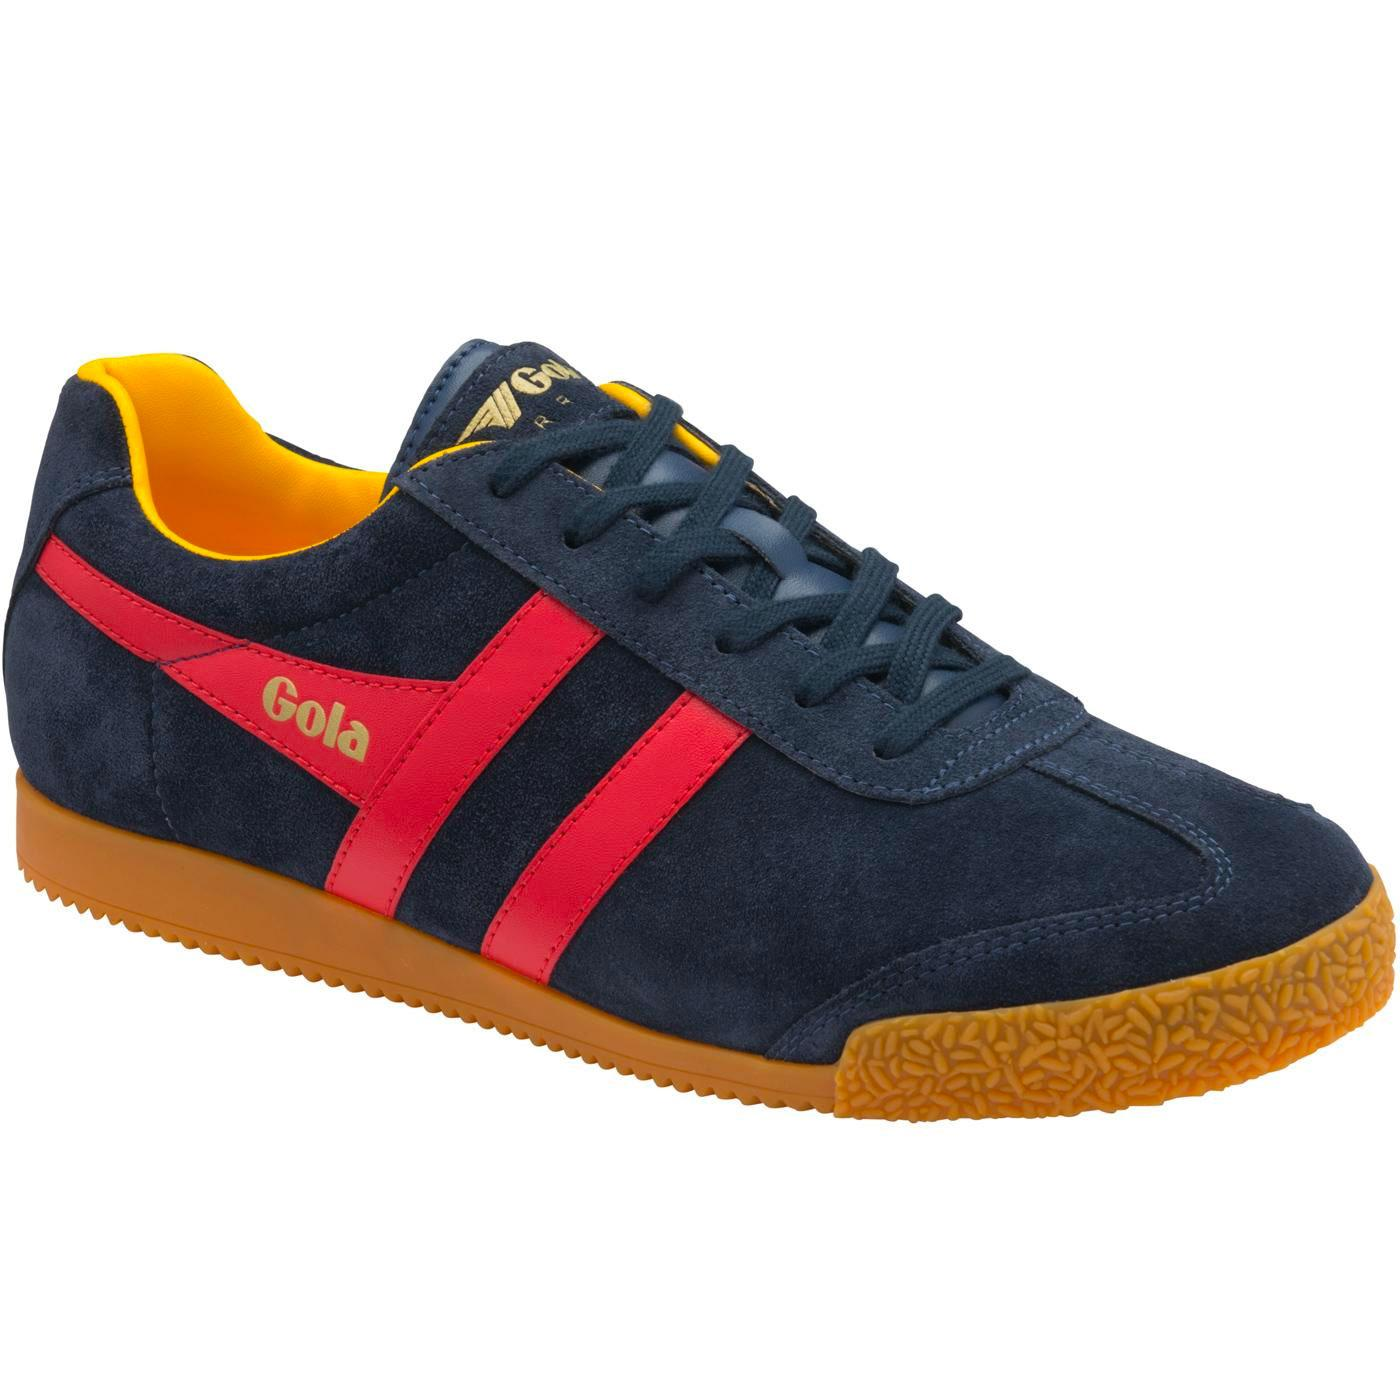 GOLA Harrier Suede Women's Retro Trainers (N/R/S)